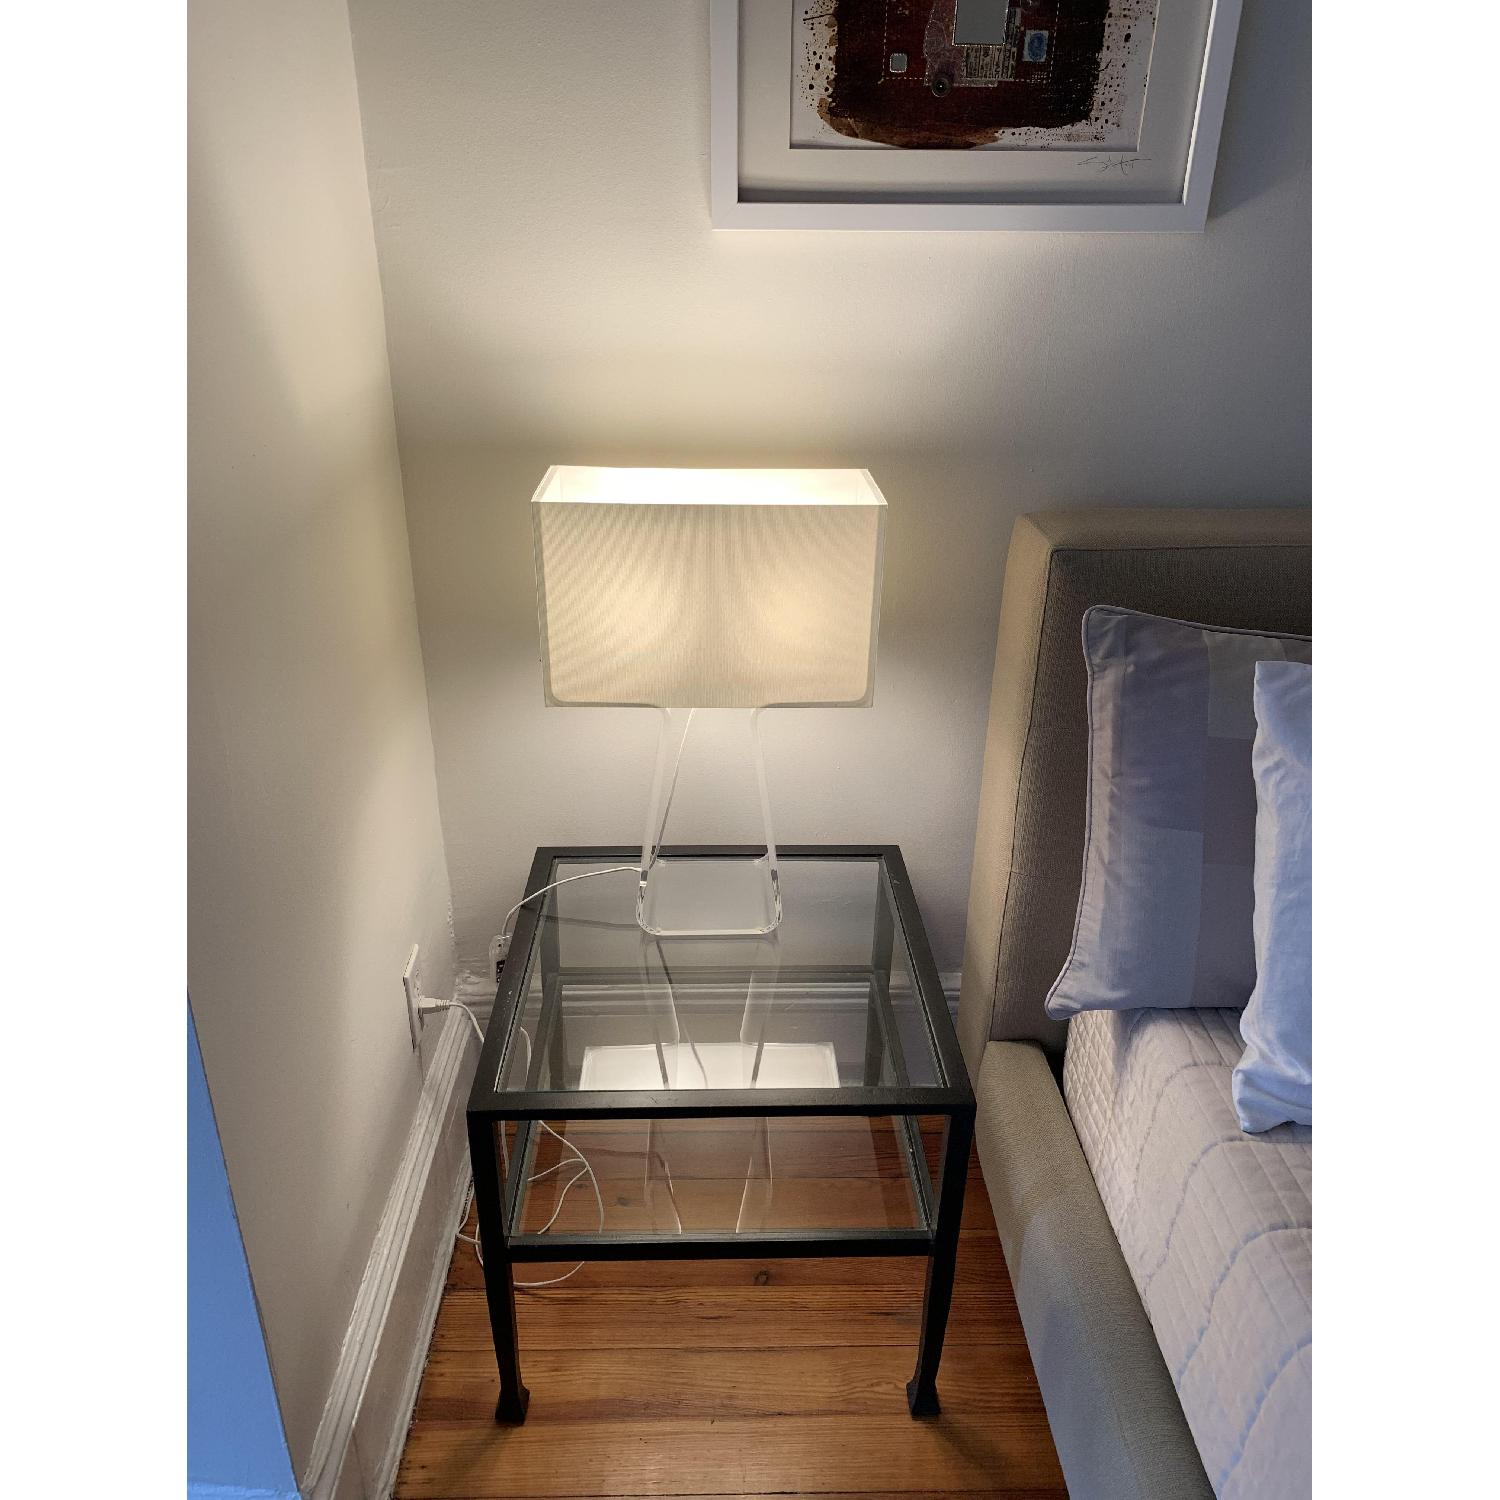 Iron Framed Pottery Barn Side Tables with Glass Top & Shelf - image-3